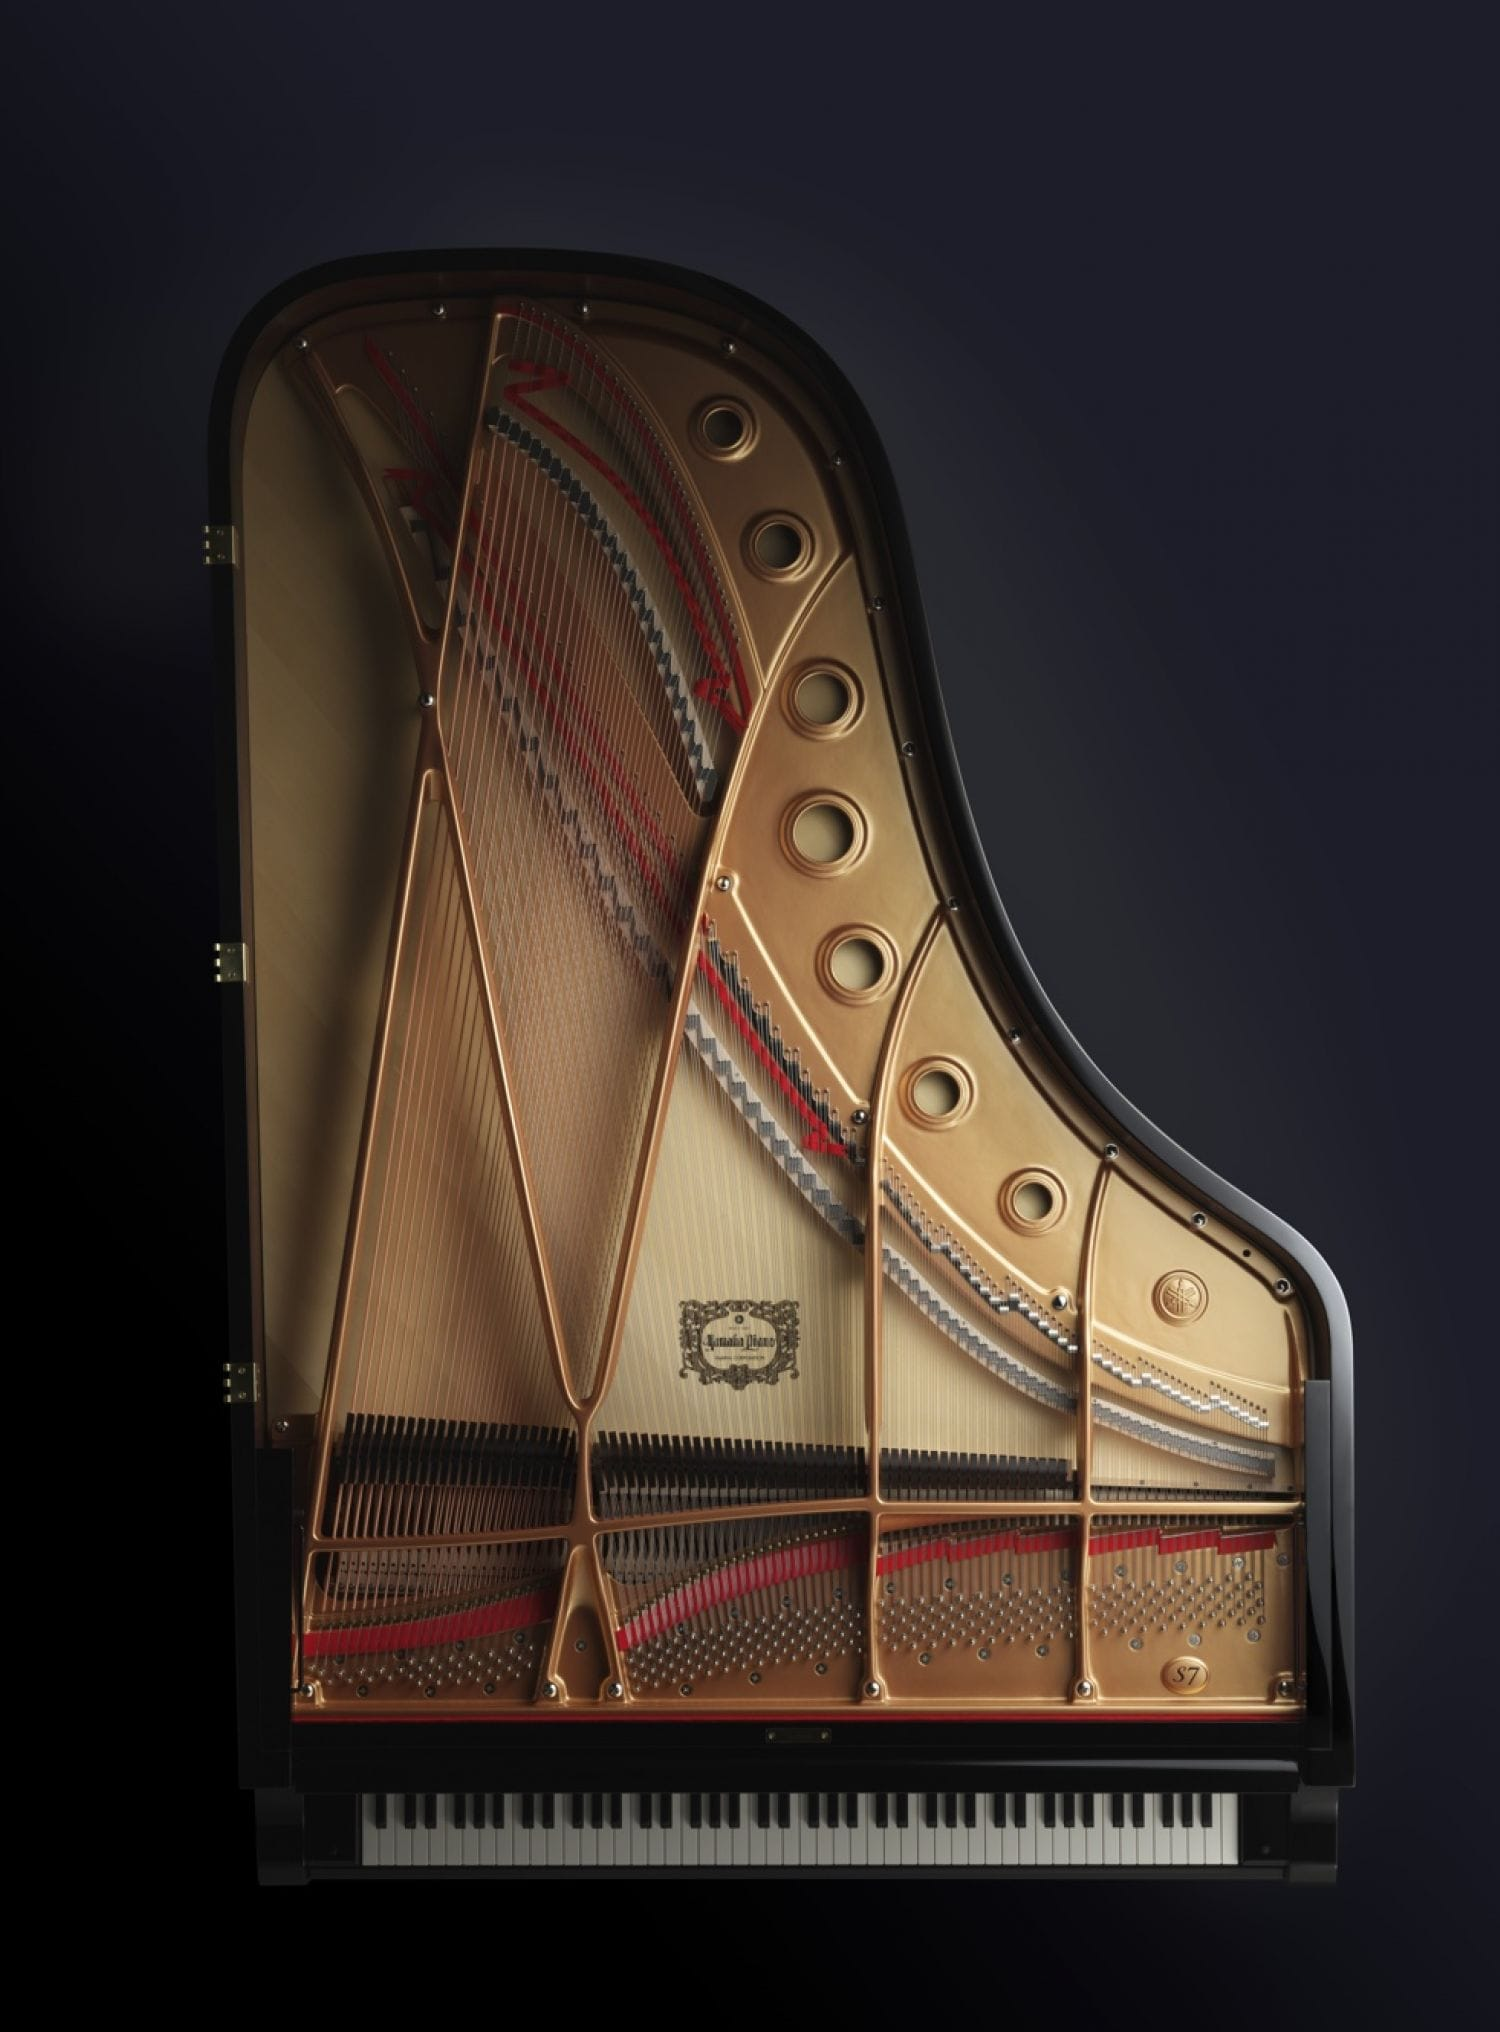 A Yamaha grand piano with lid removed and viewed from above to see entire interior.